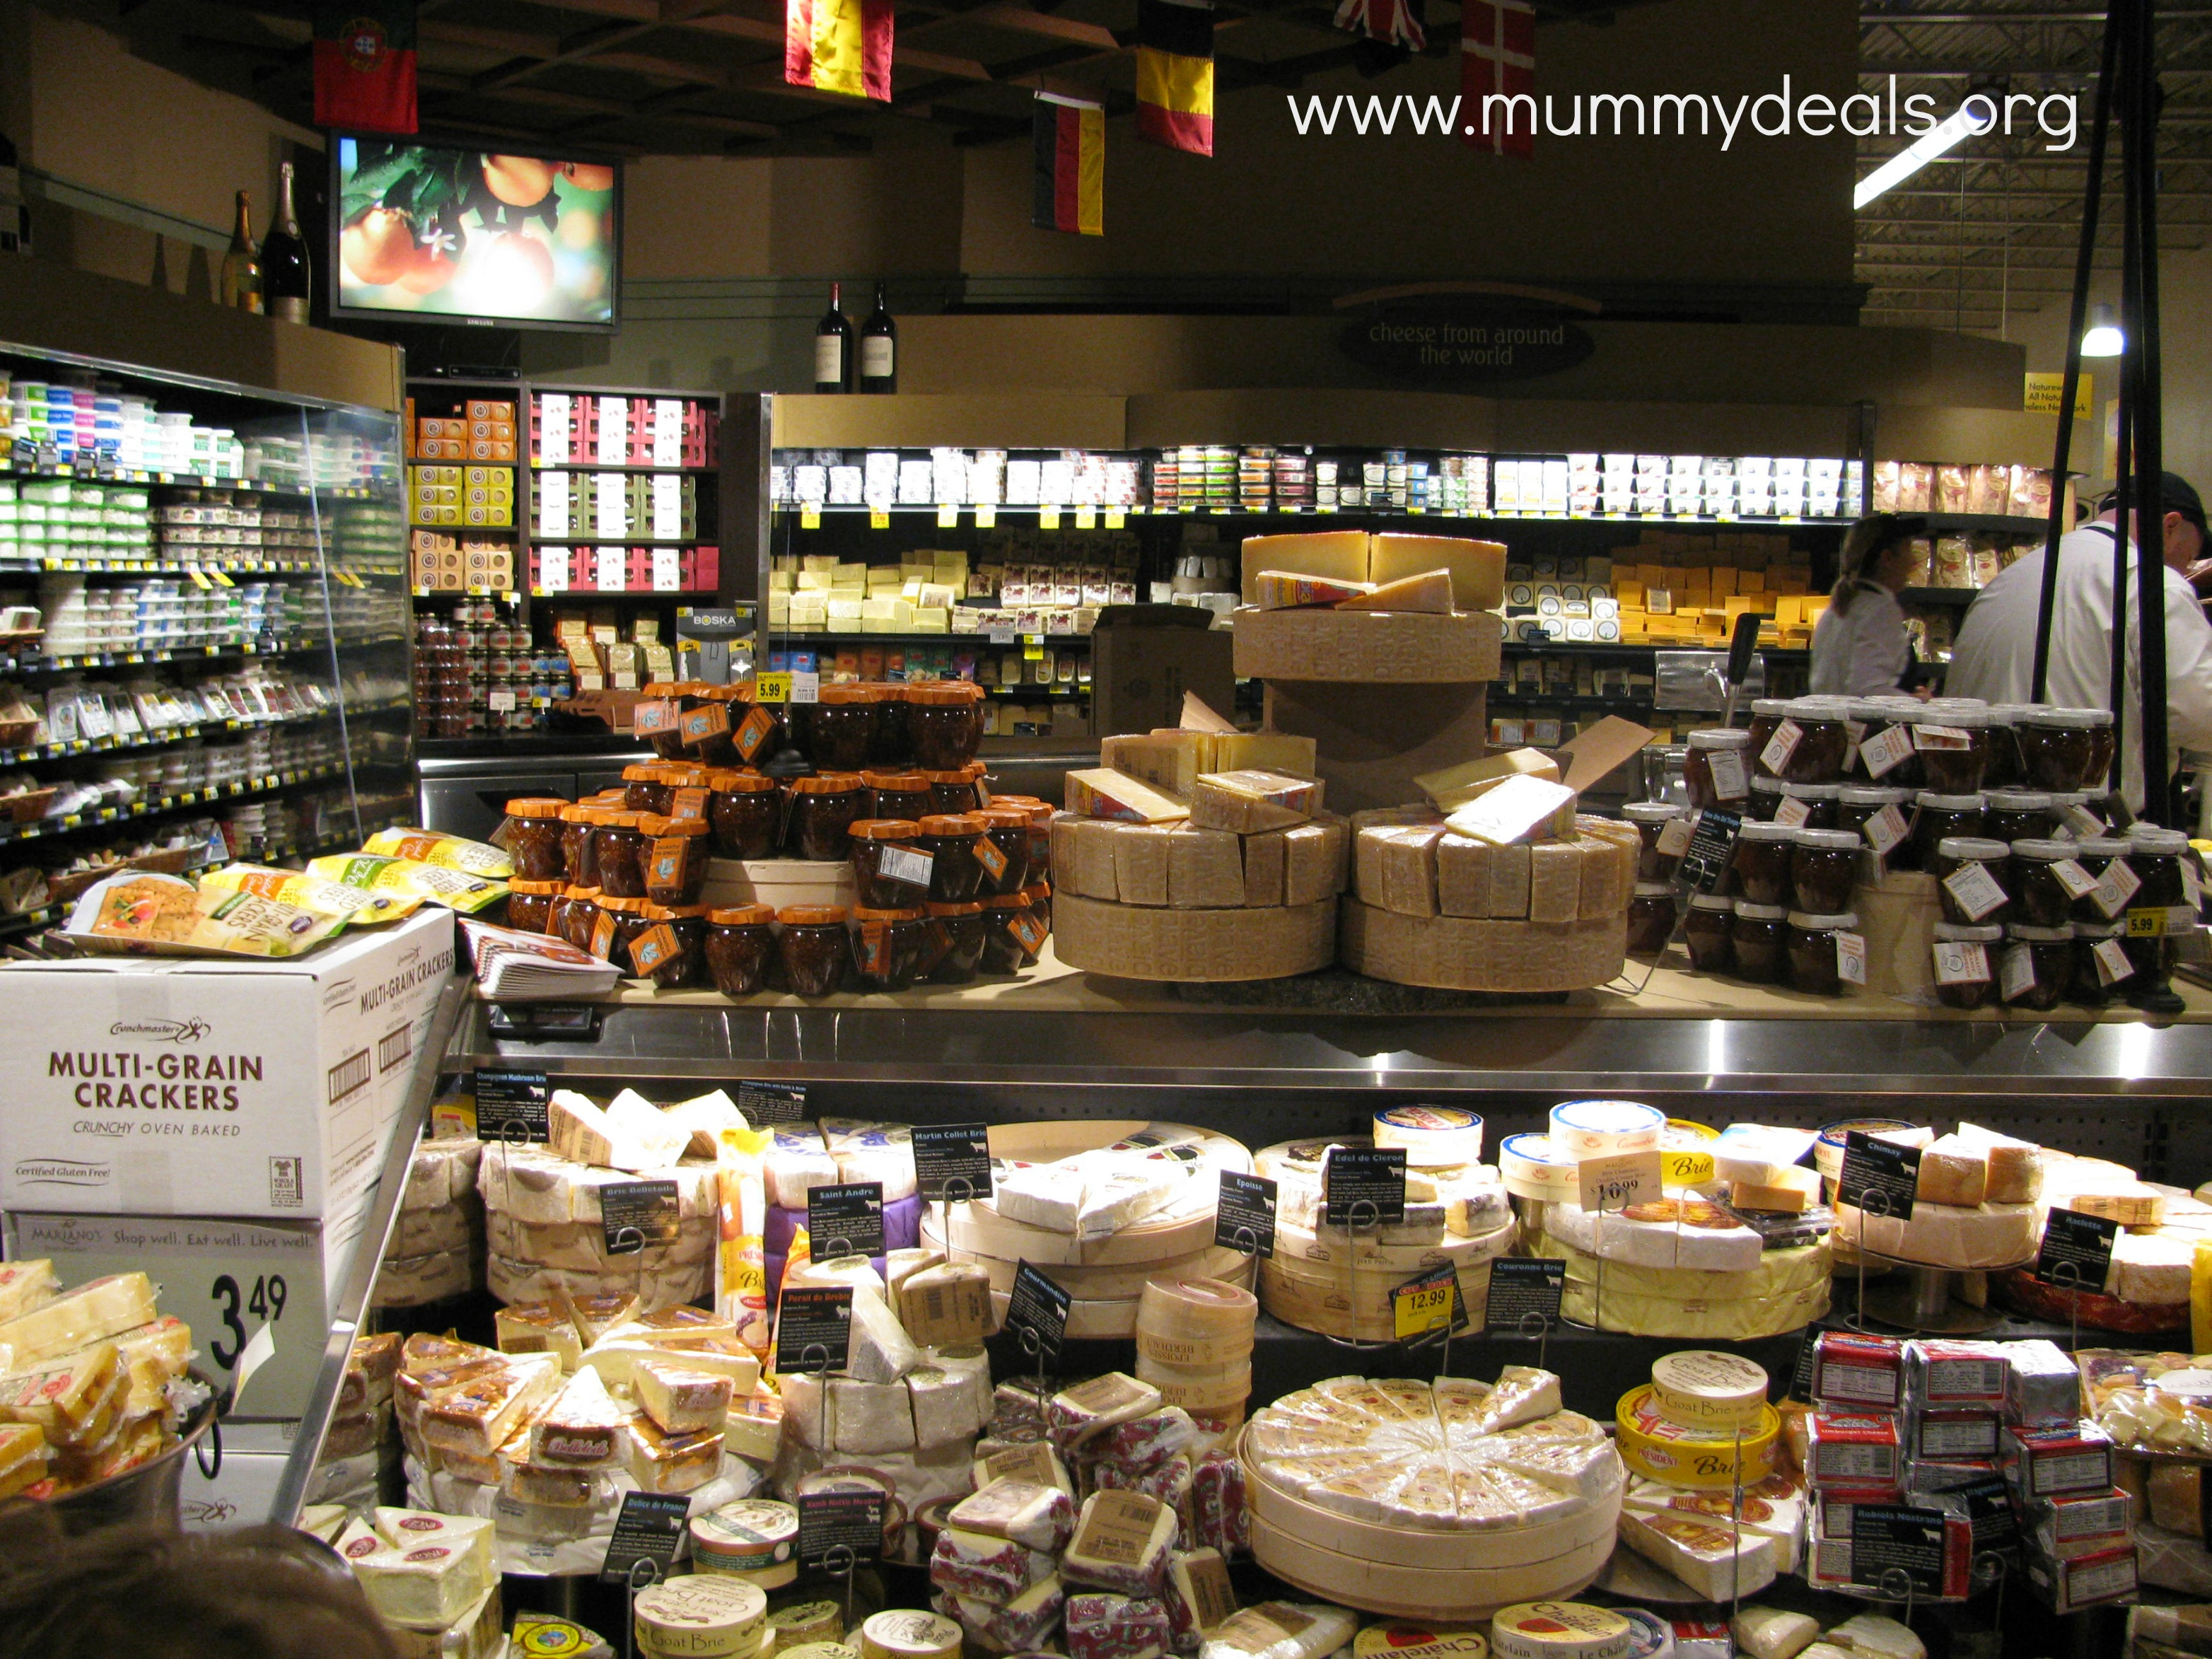 Mariano's Fresh Market - Your Neighborhood Store - Mummy Deals